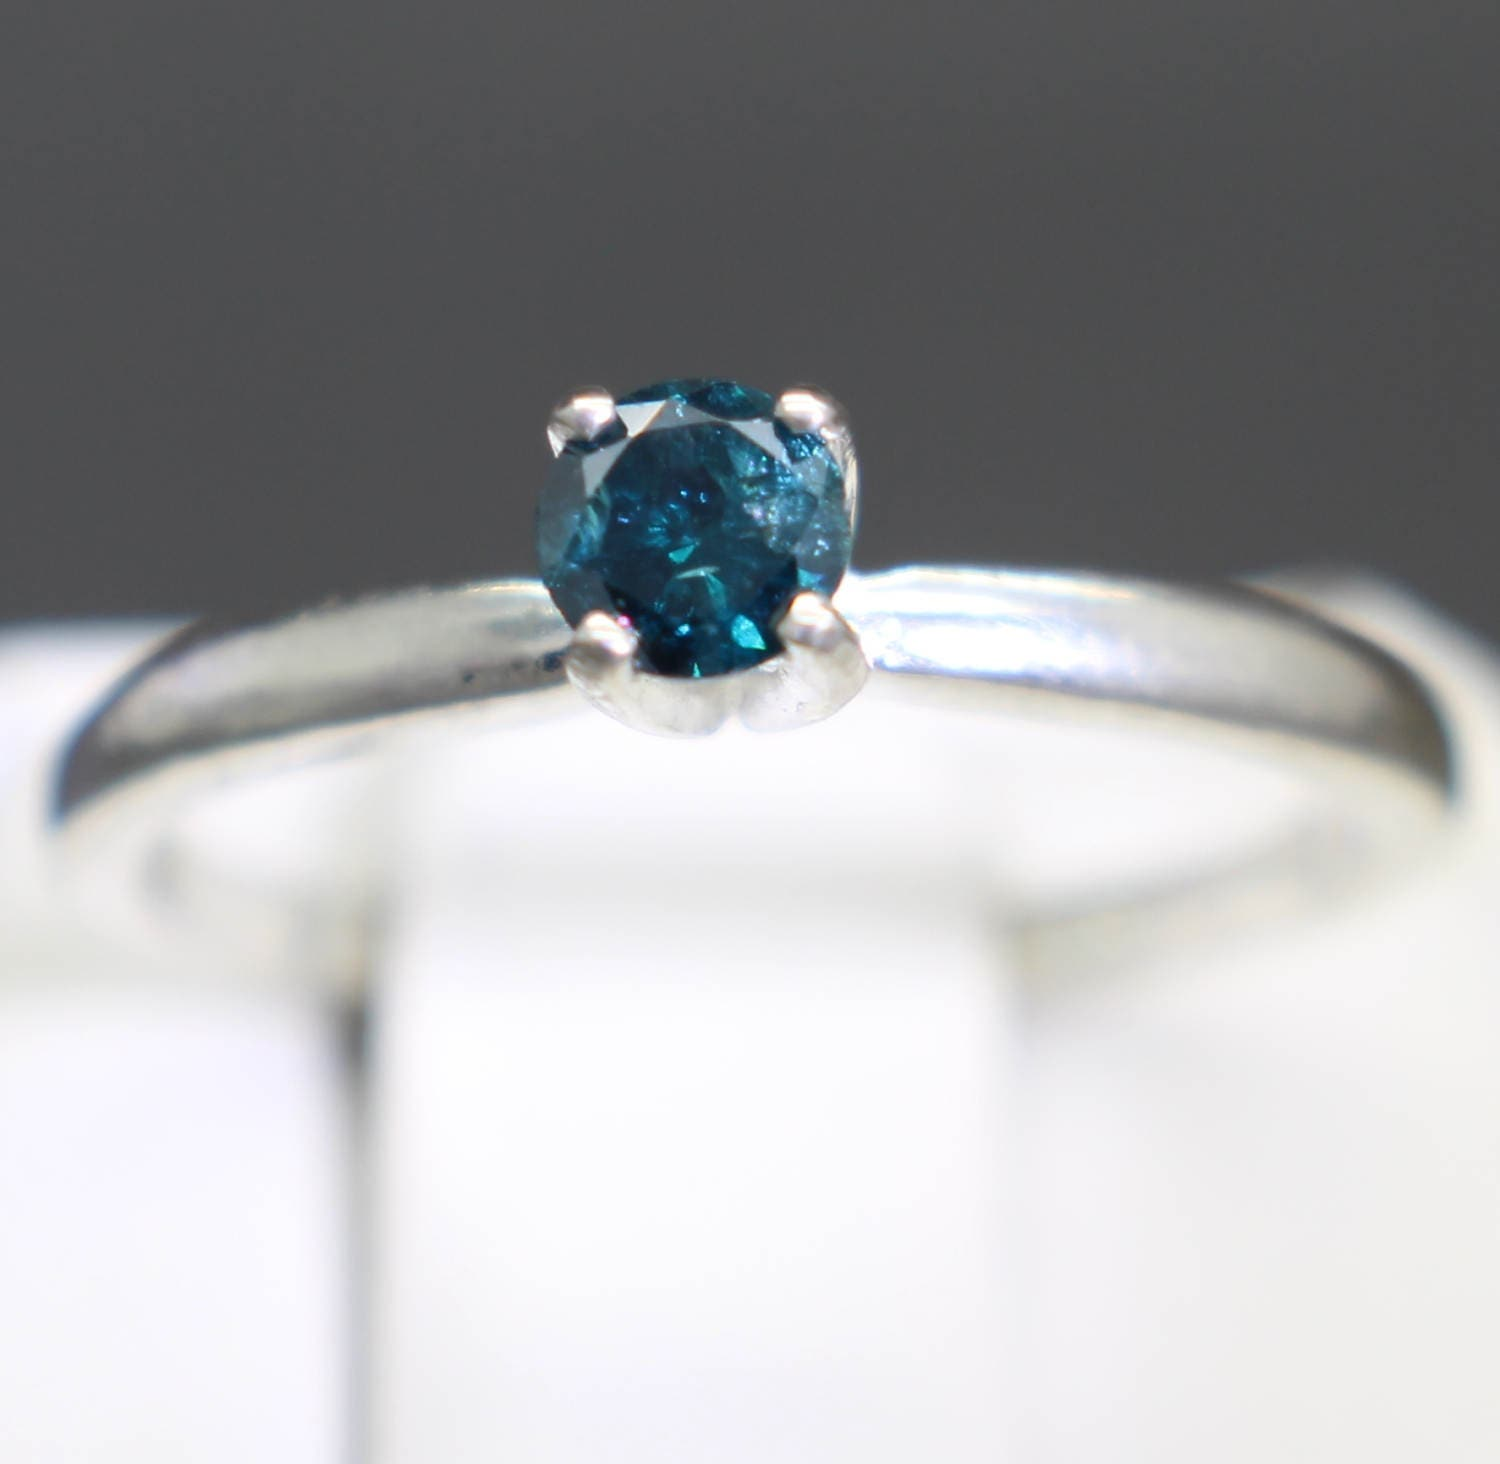 018cts 366mm Rare Dark Blue Diamond Engagement Ring Graded And Apprasied!  Size 55